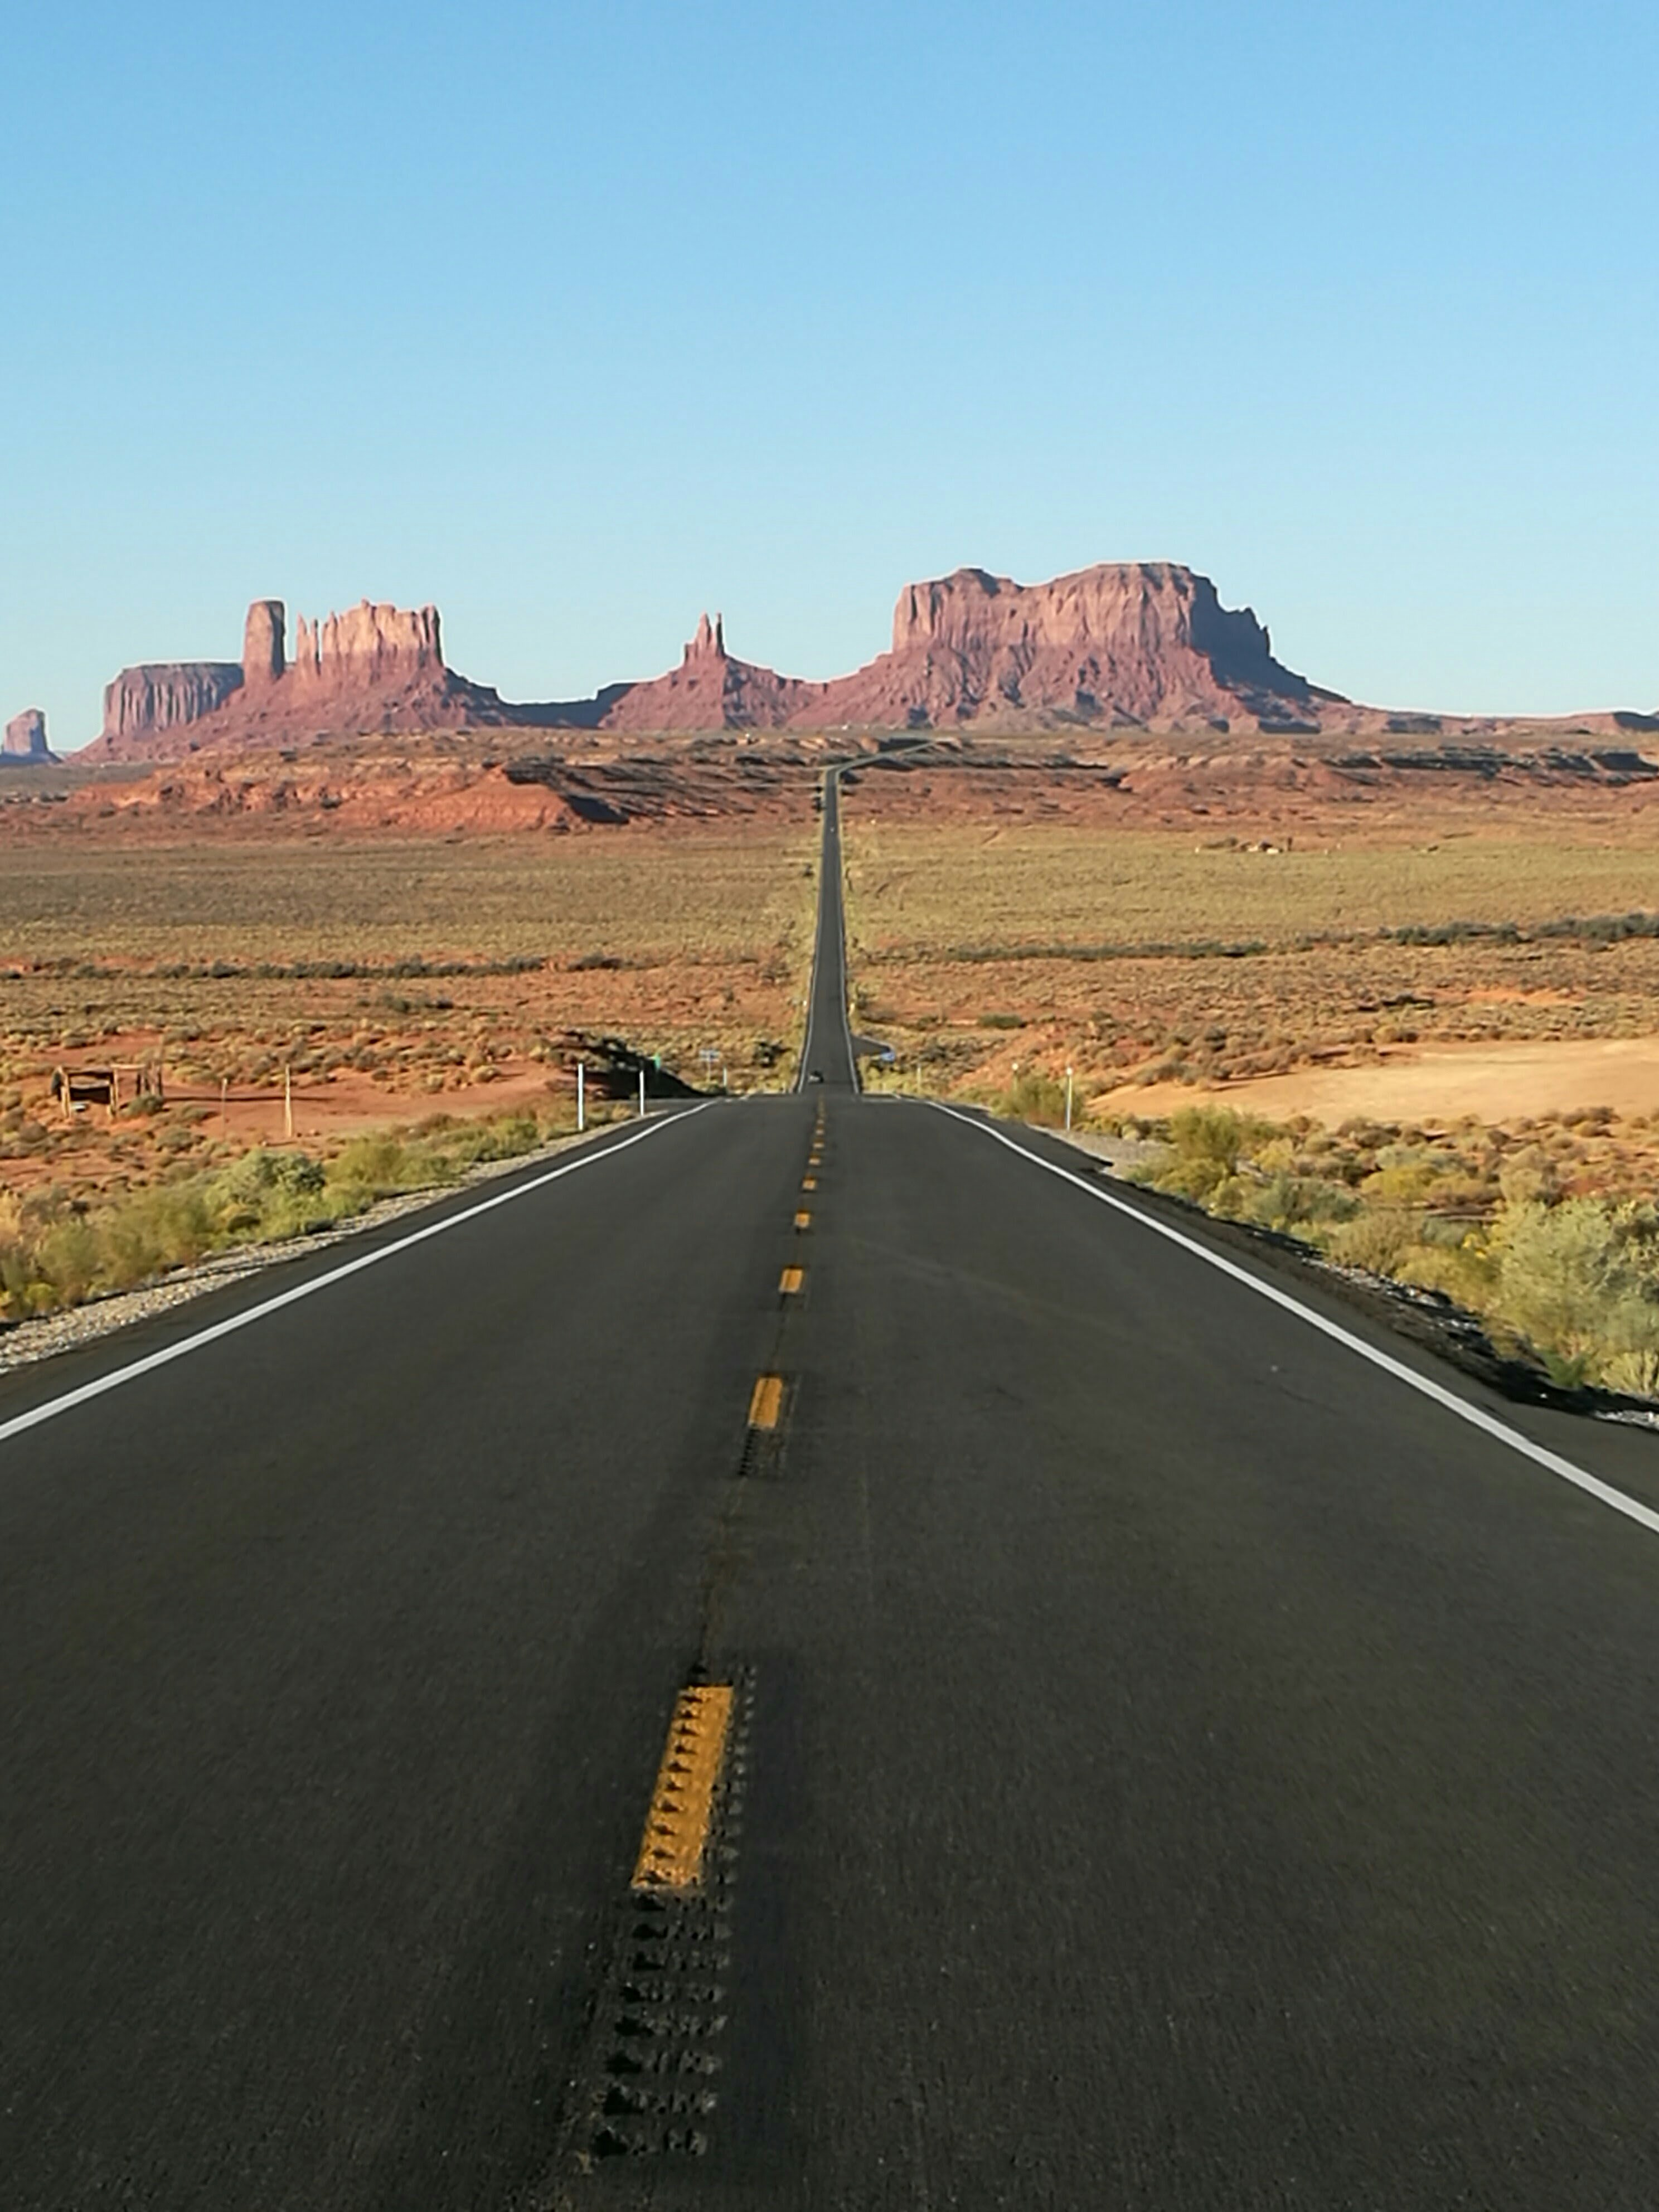 The Magnificent Monument Valley